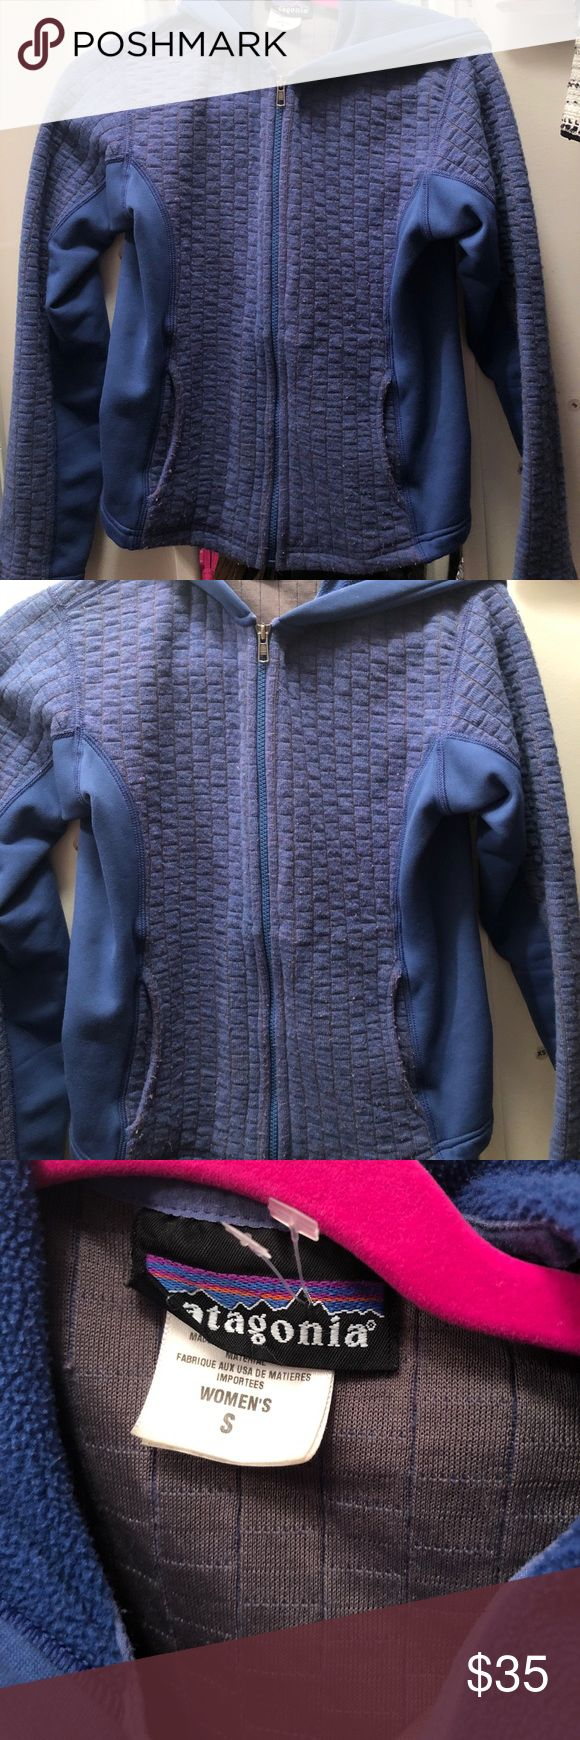 Patagonia Women's Jacket Small Slight pilling throughout but overall good condition ! No flaws like stains rips etc Patagonia Jackets & Coats